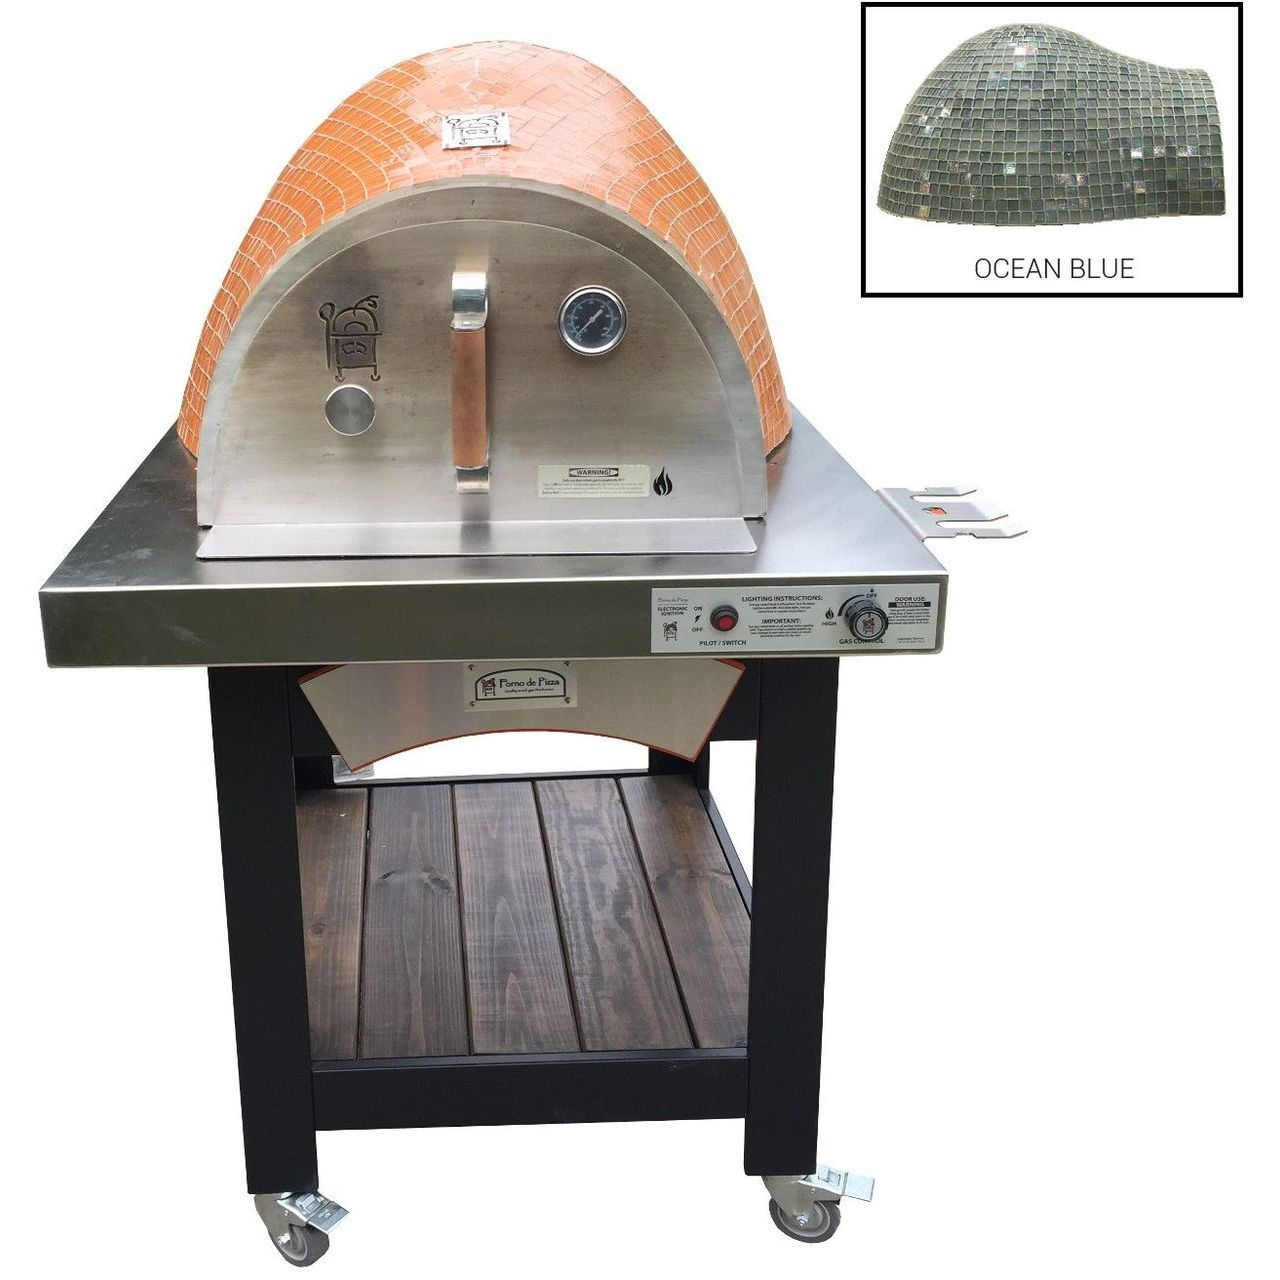 HPC Forno Hybrid Gas/Wood Oven With EI & Cart in Ocean Blue - NG